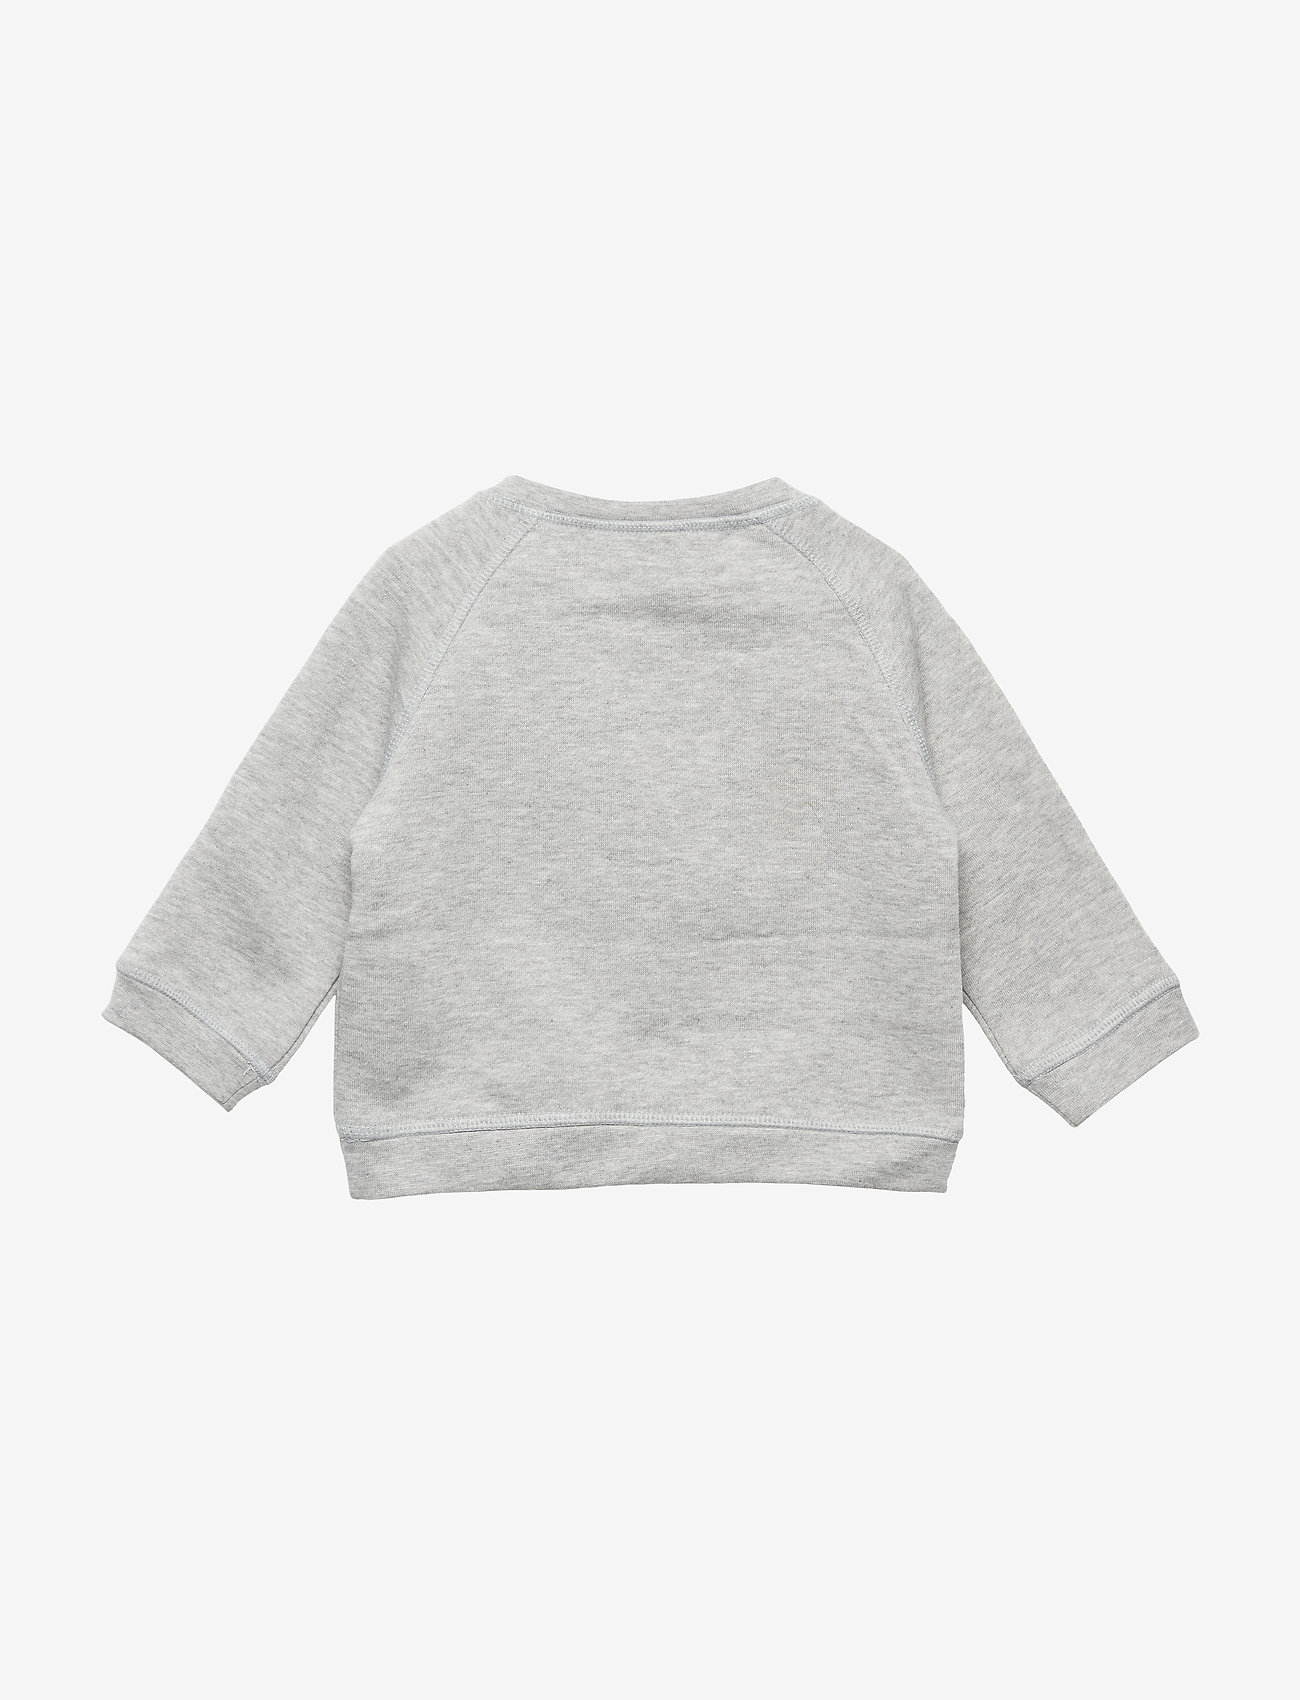 Petit by Sofie Schnoor - Sweat - sweatshirts - grey - 1